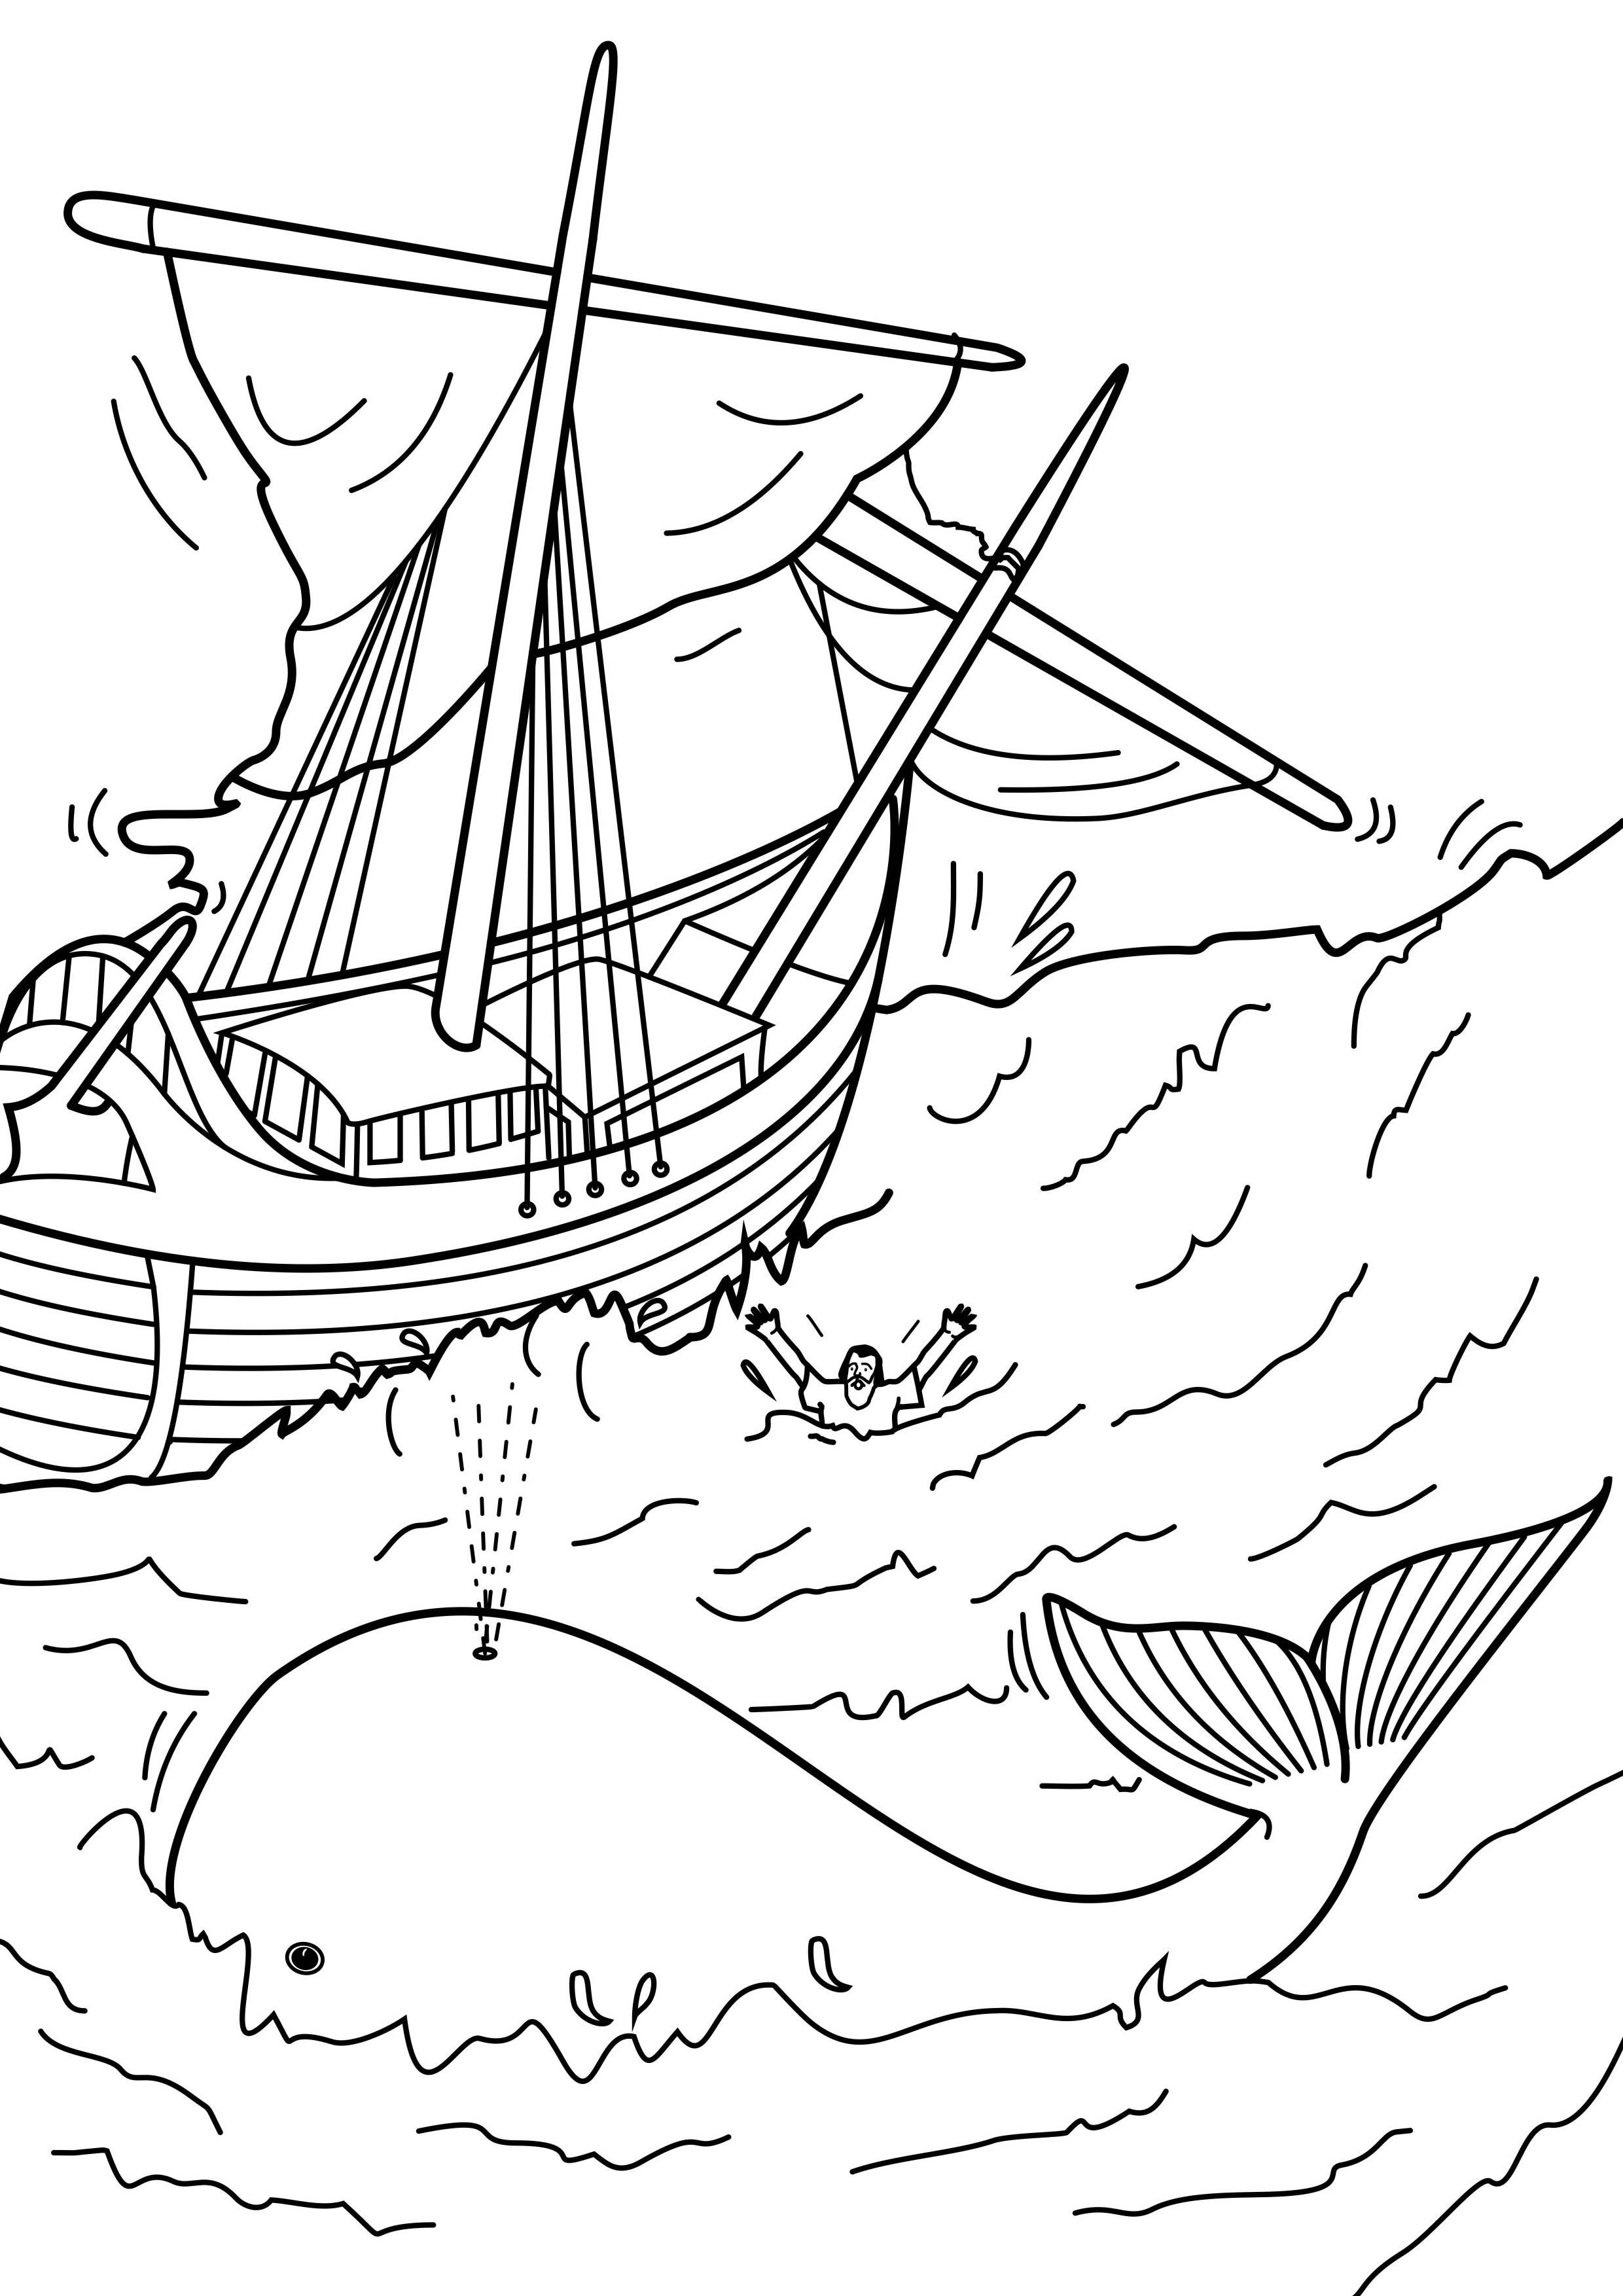 jonah the whale coloring pages free jonah coloring page coloring home pages jonah the coloring whale